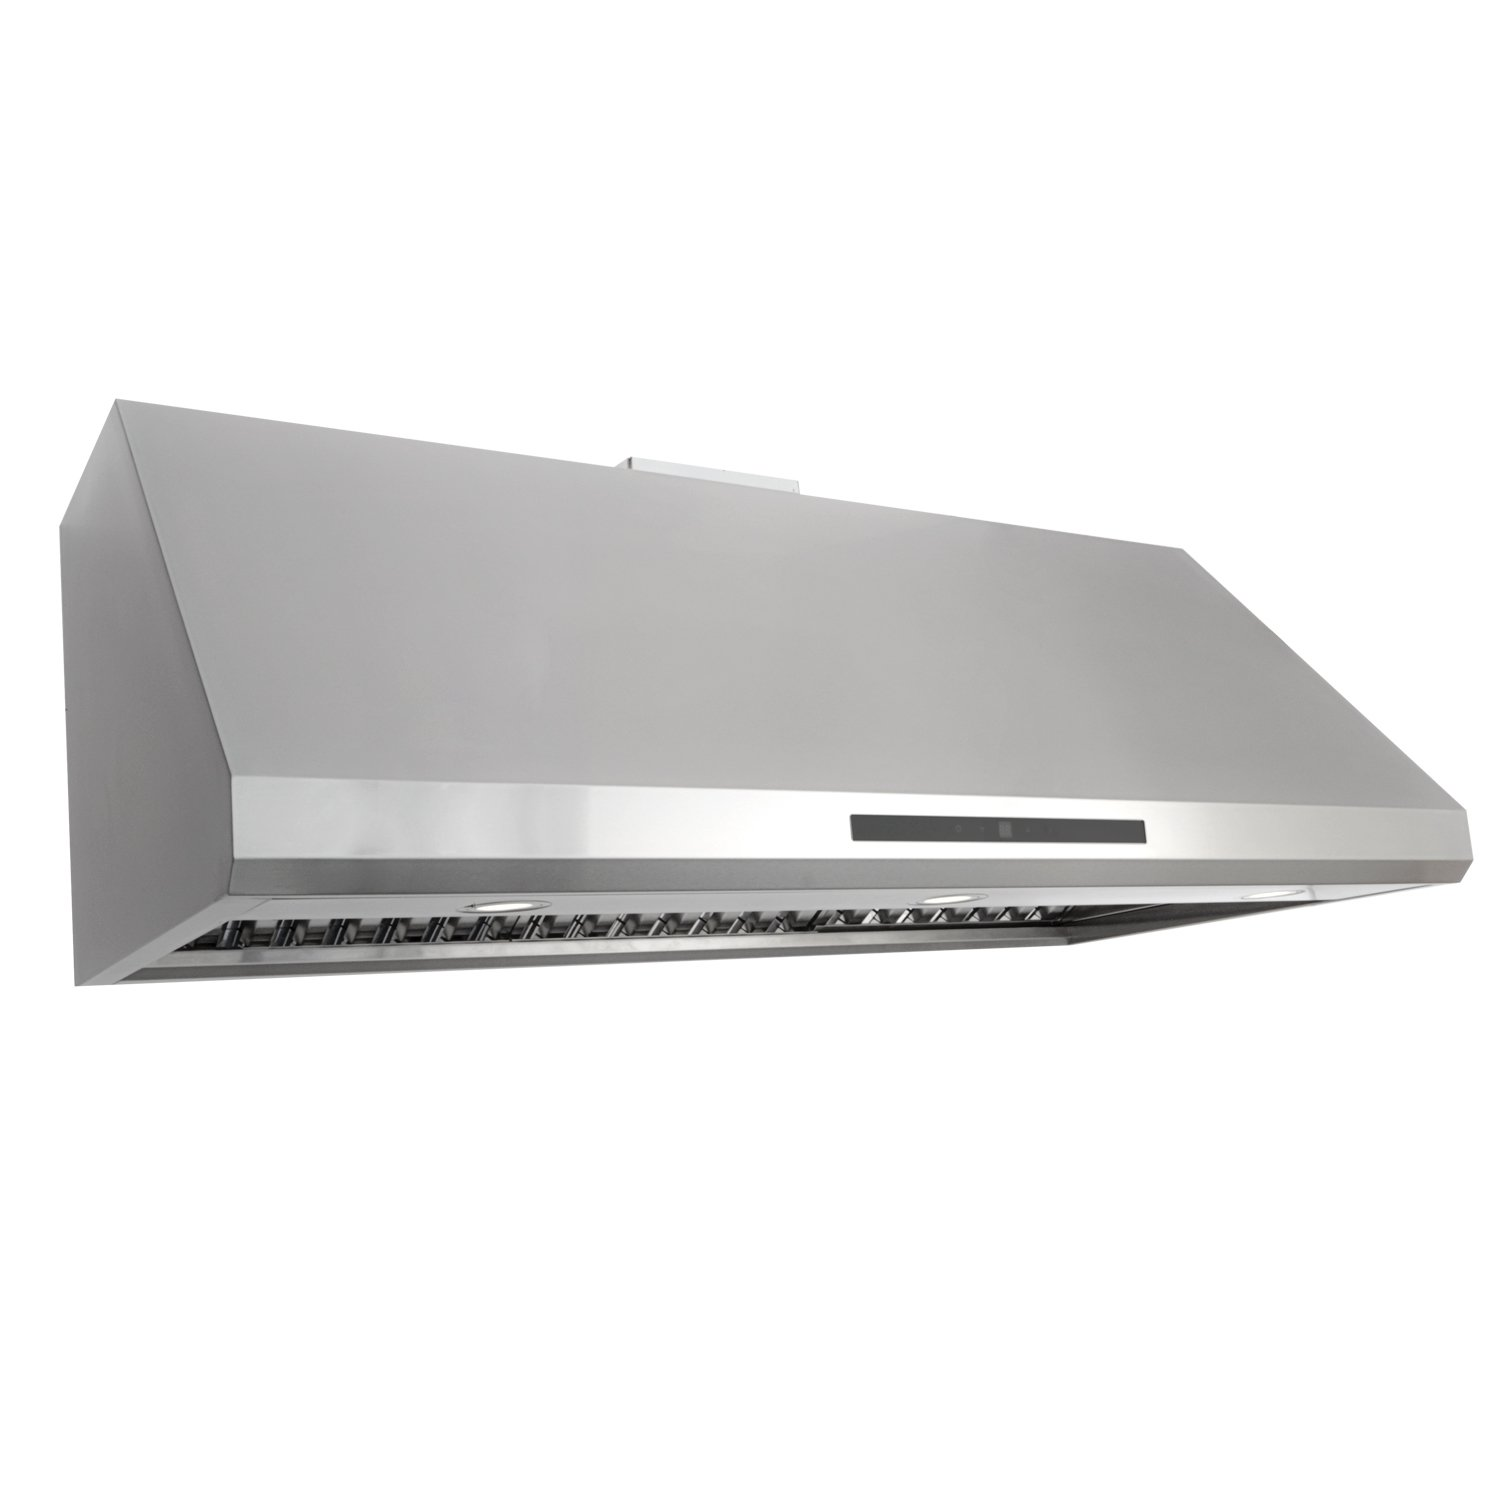 Cosmo 48 in. 1000 CFM Ducted Under Cabinet Stainless Steel Range Hood with Touch Screen, Kitchen Vent Hood Exhaust Fan with Permanent Filters and LED Lighting